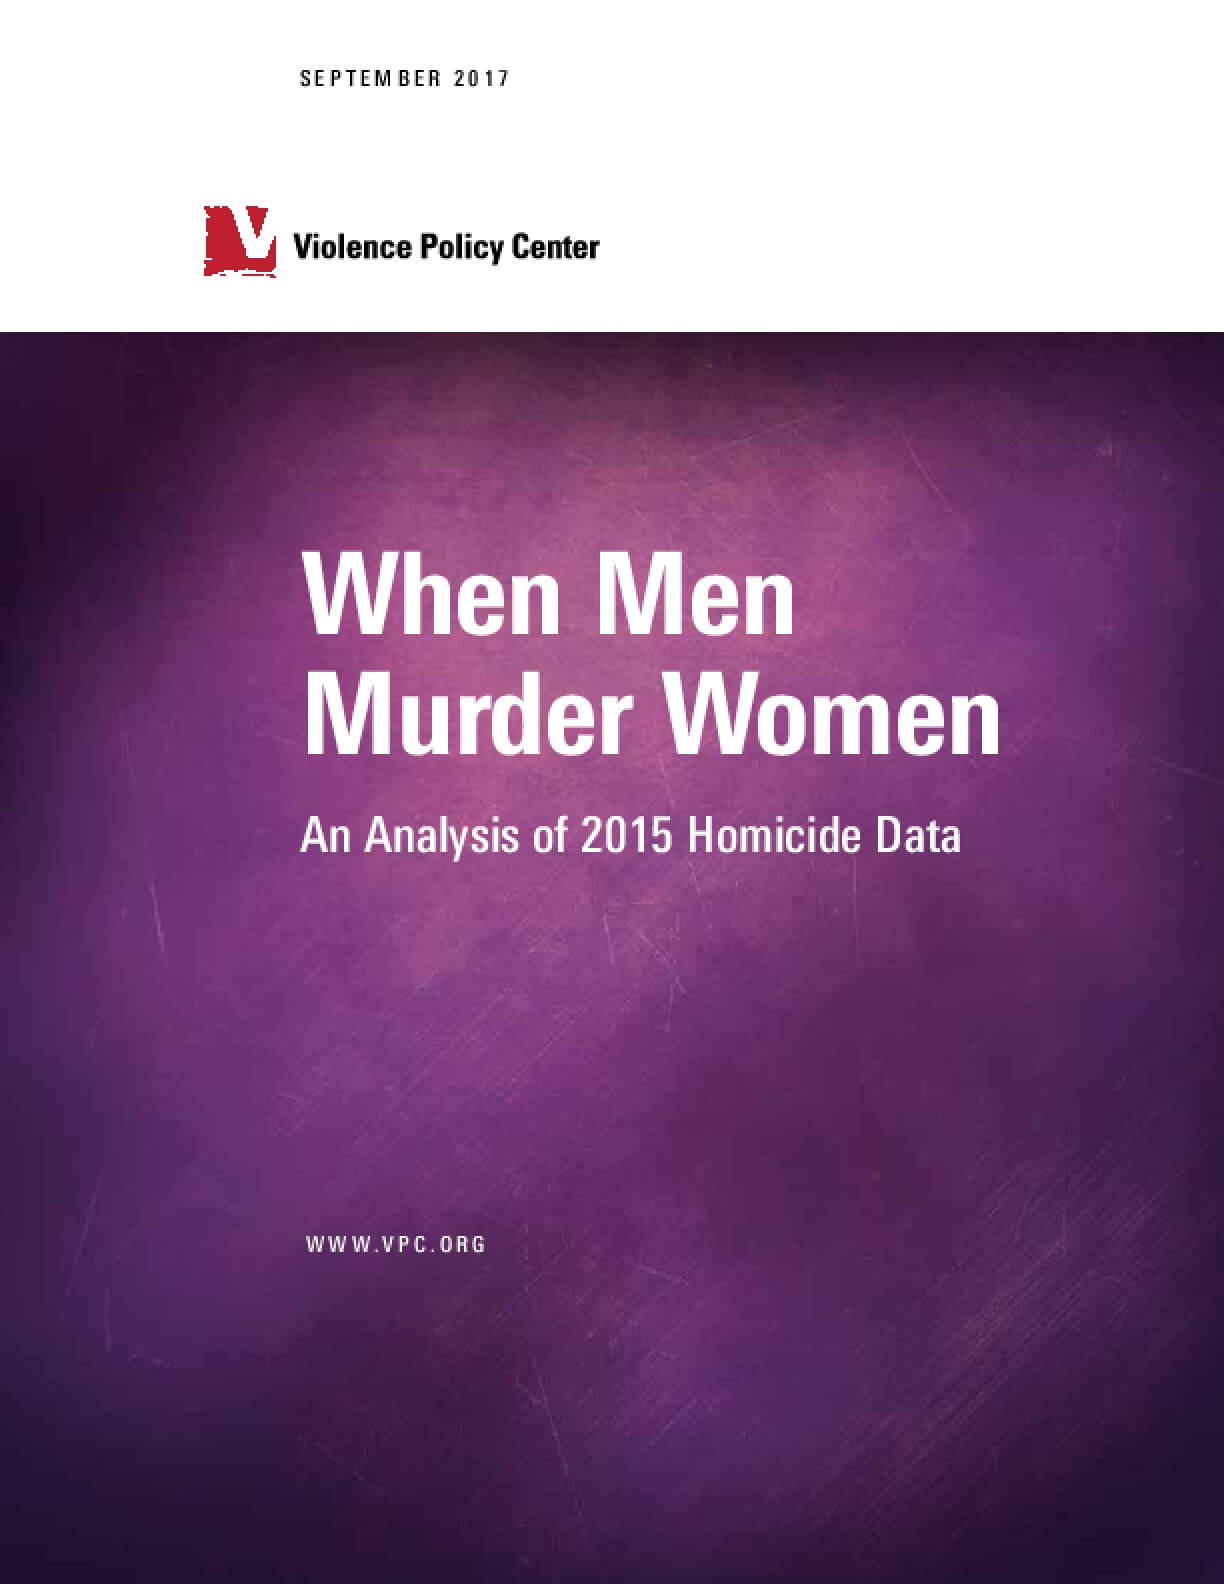 When Men Murder Women: An Analysis of 2015 Homicide Data